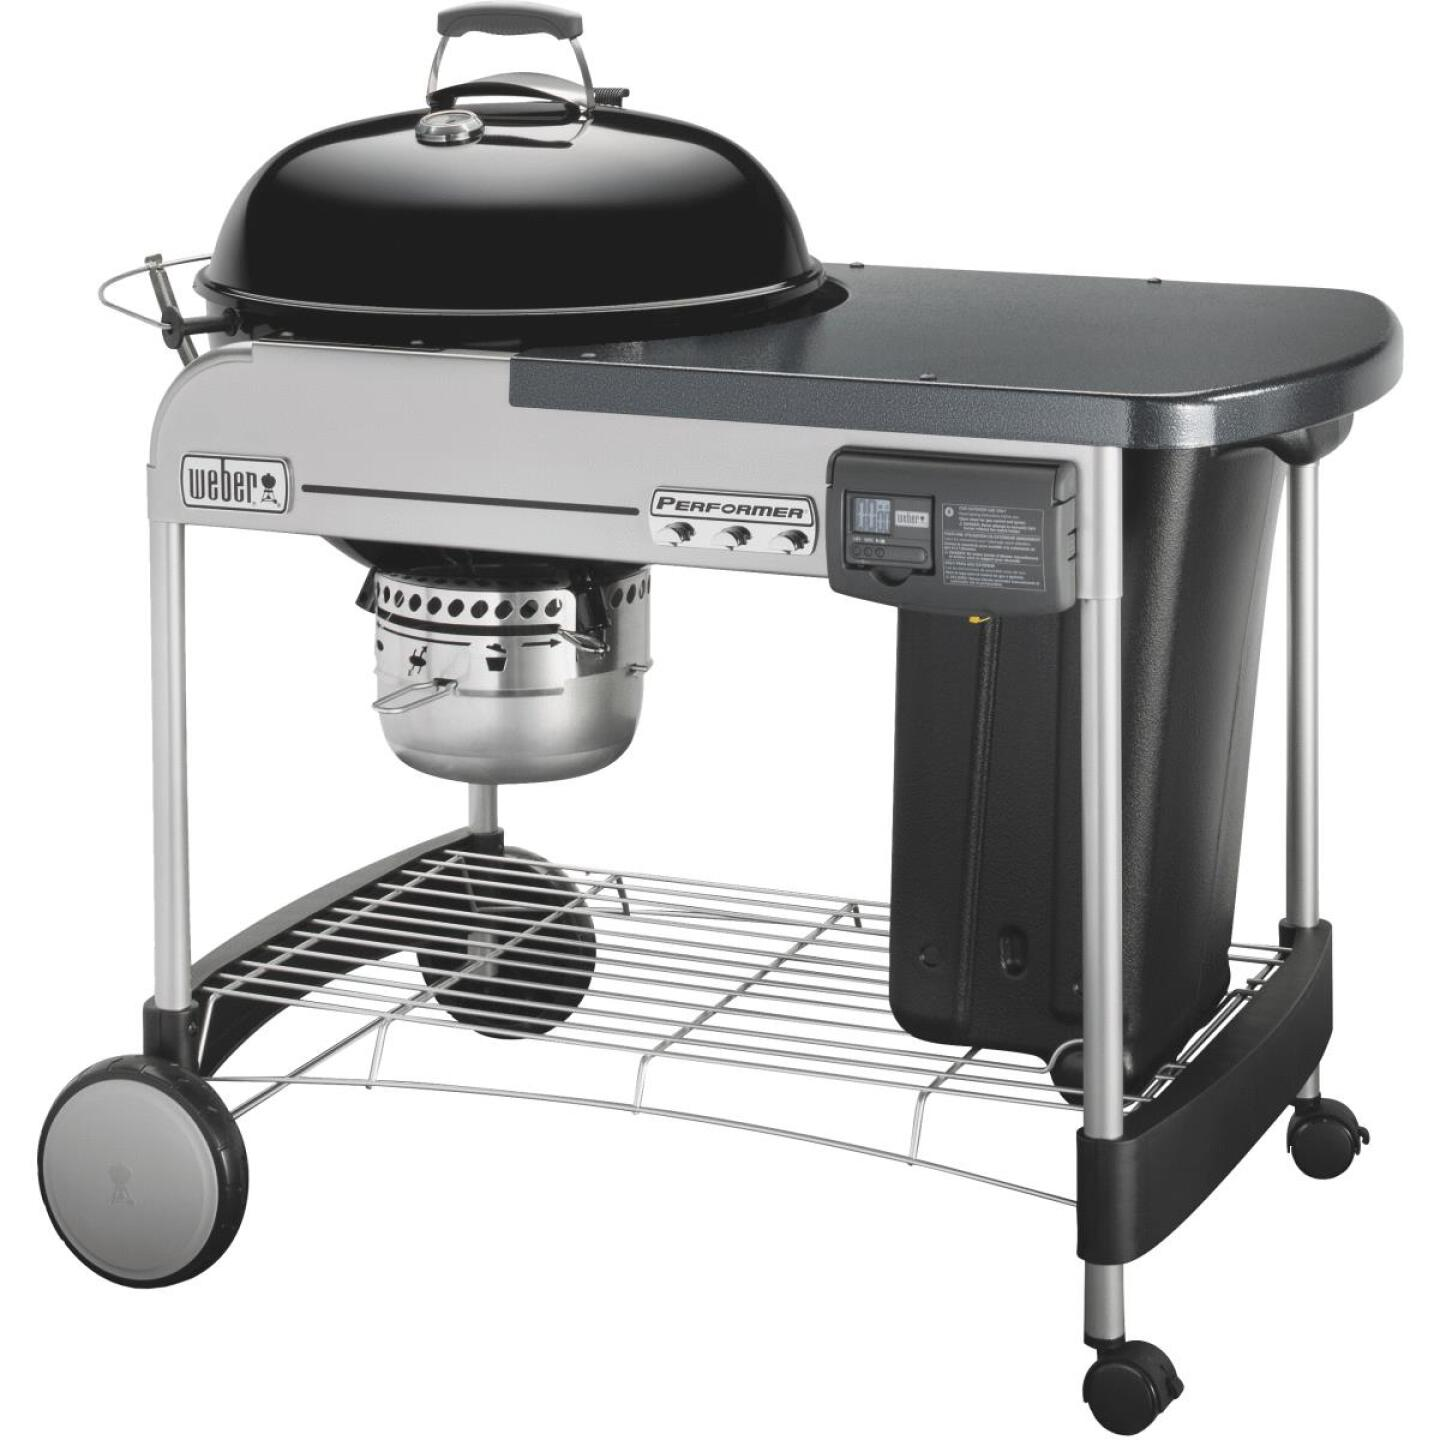 Weber Performer Deluxe 22 In. Black Charcoal Grill Image 4